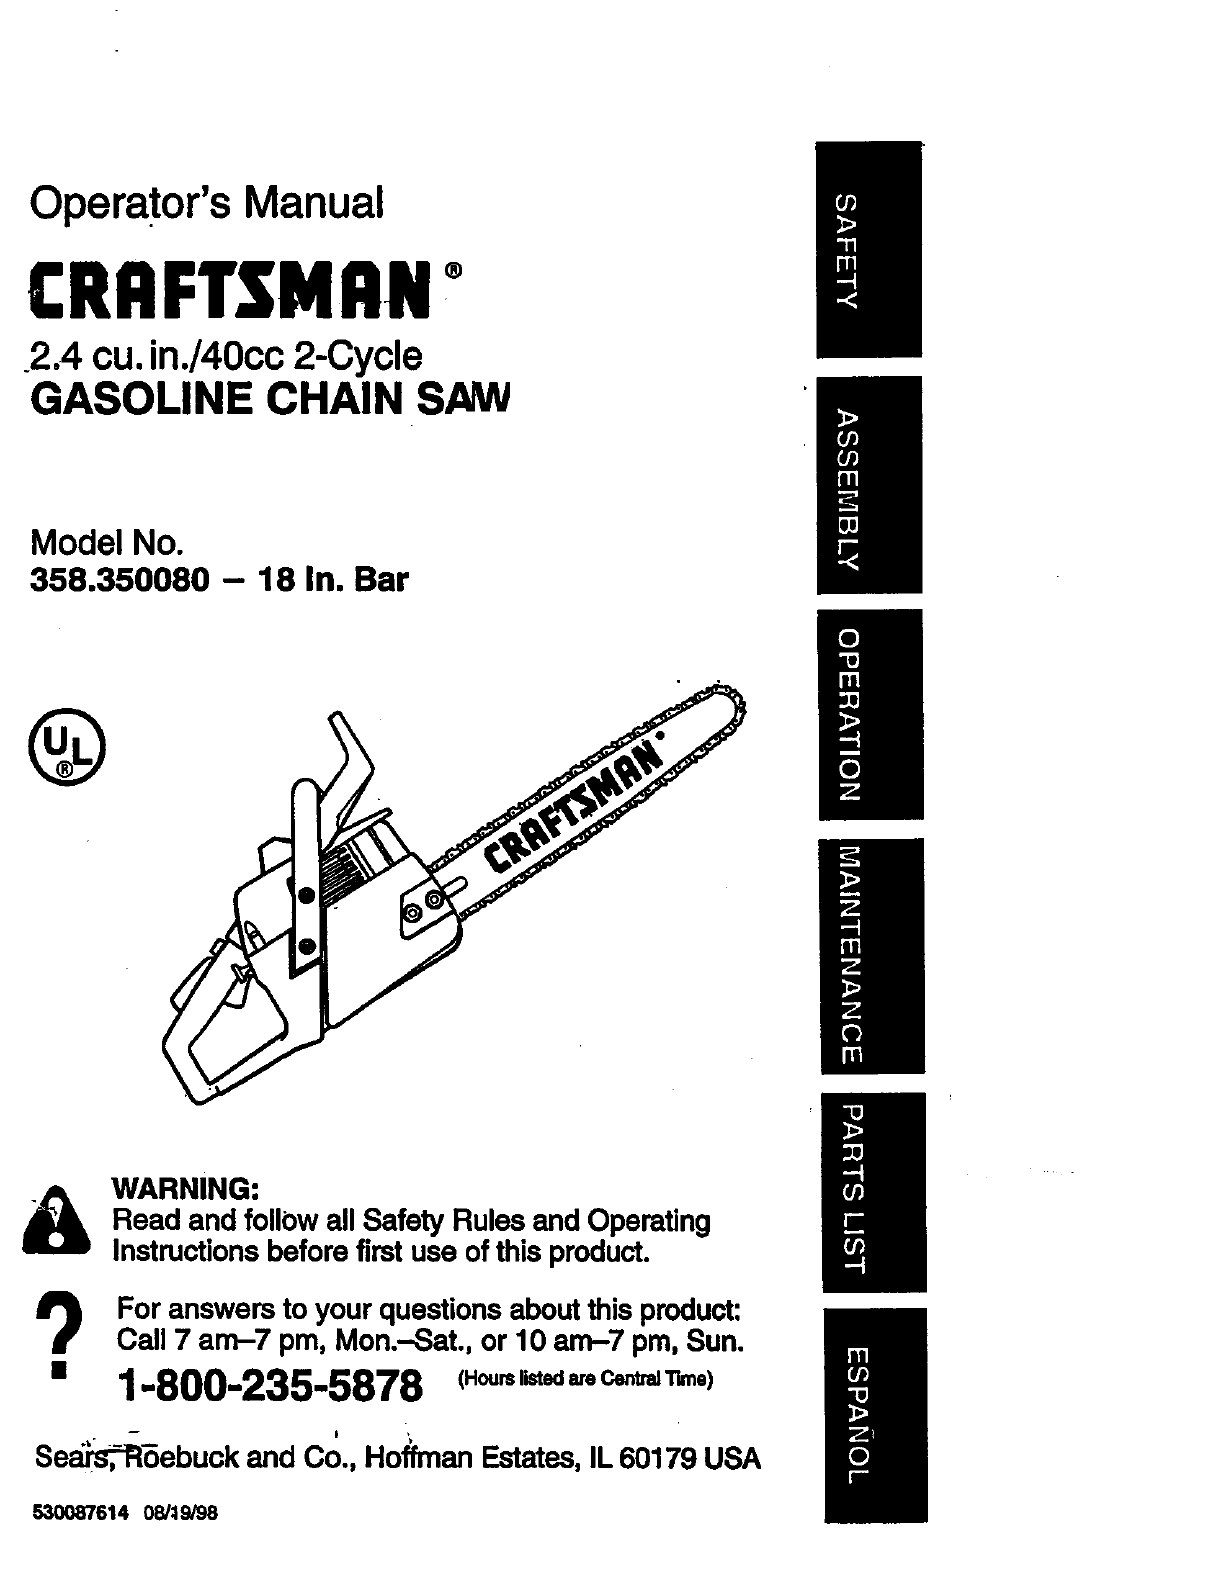 Craftsman 358350080 User Manual GAS CHAINSAW Manuals And